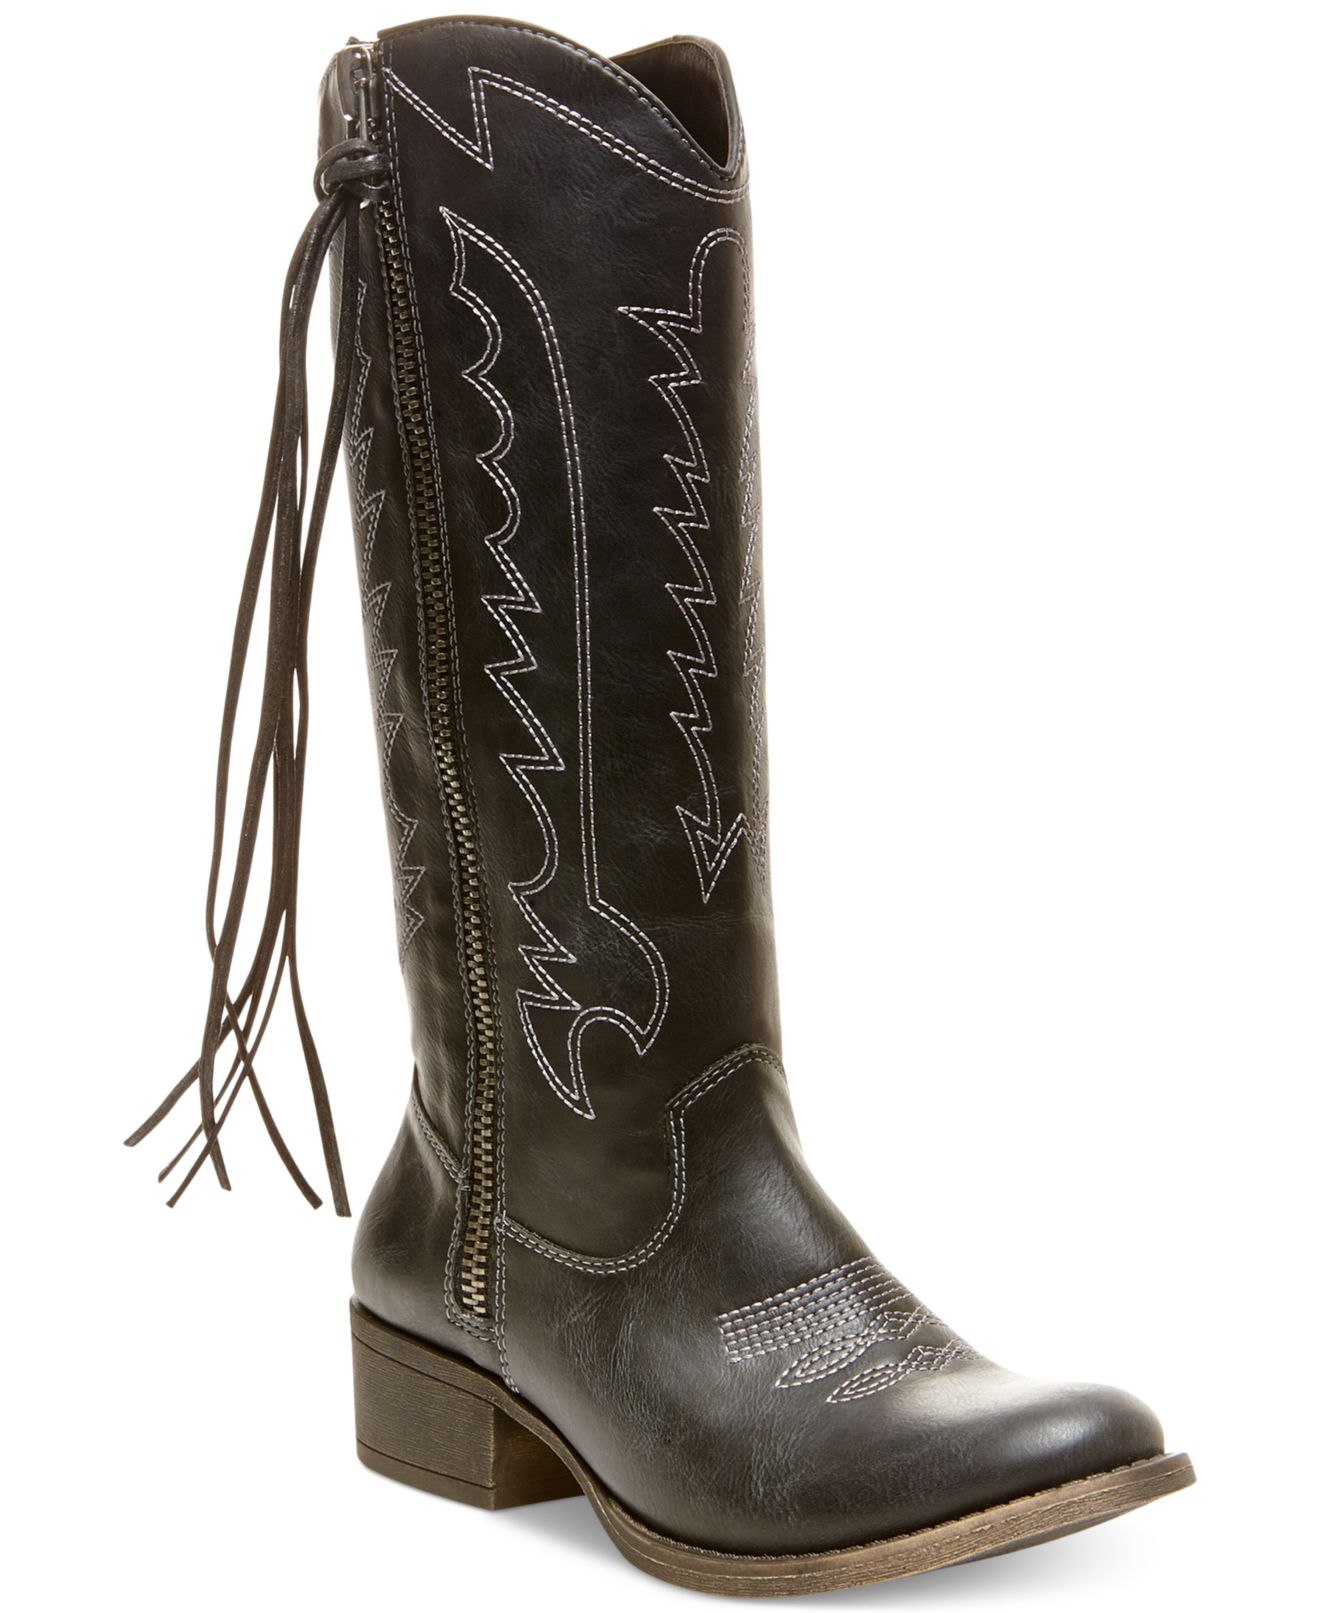 Cowboys Boots For Girls Girl Durant Cowboy Boots